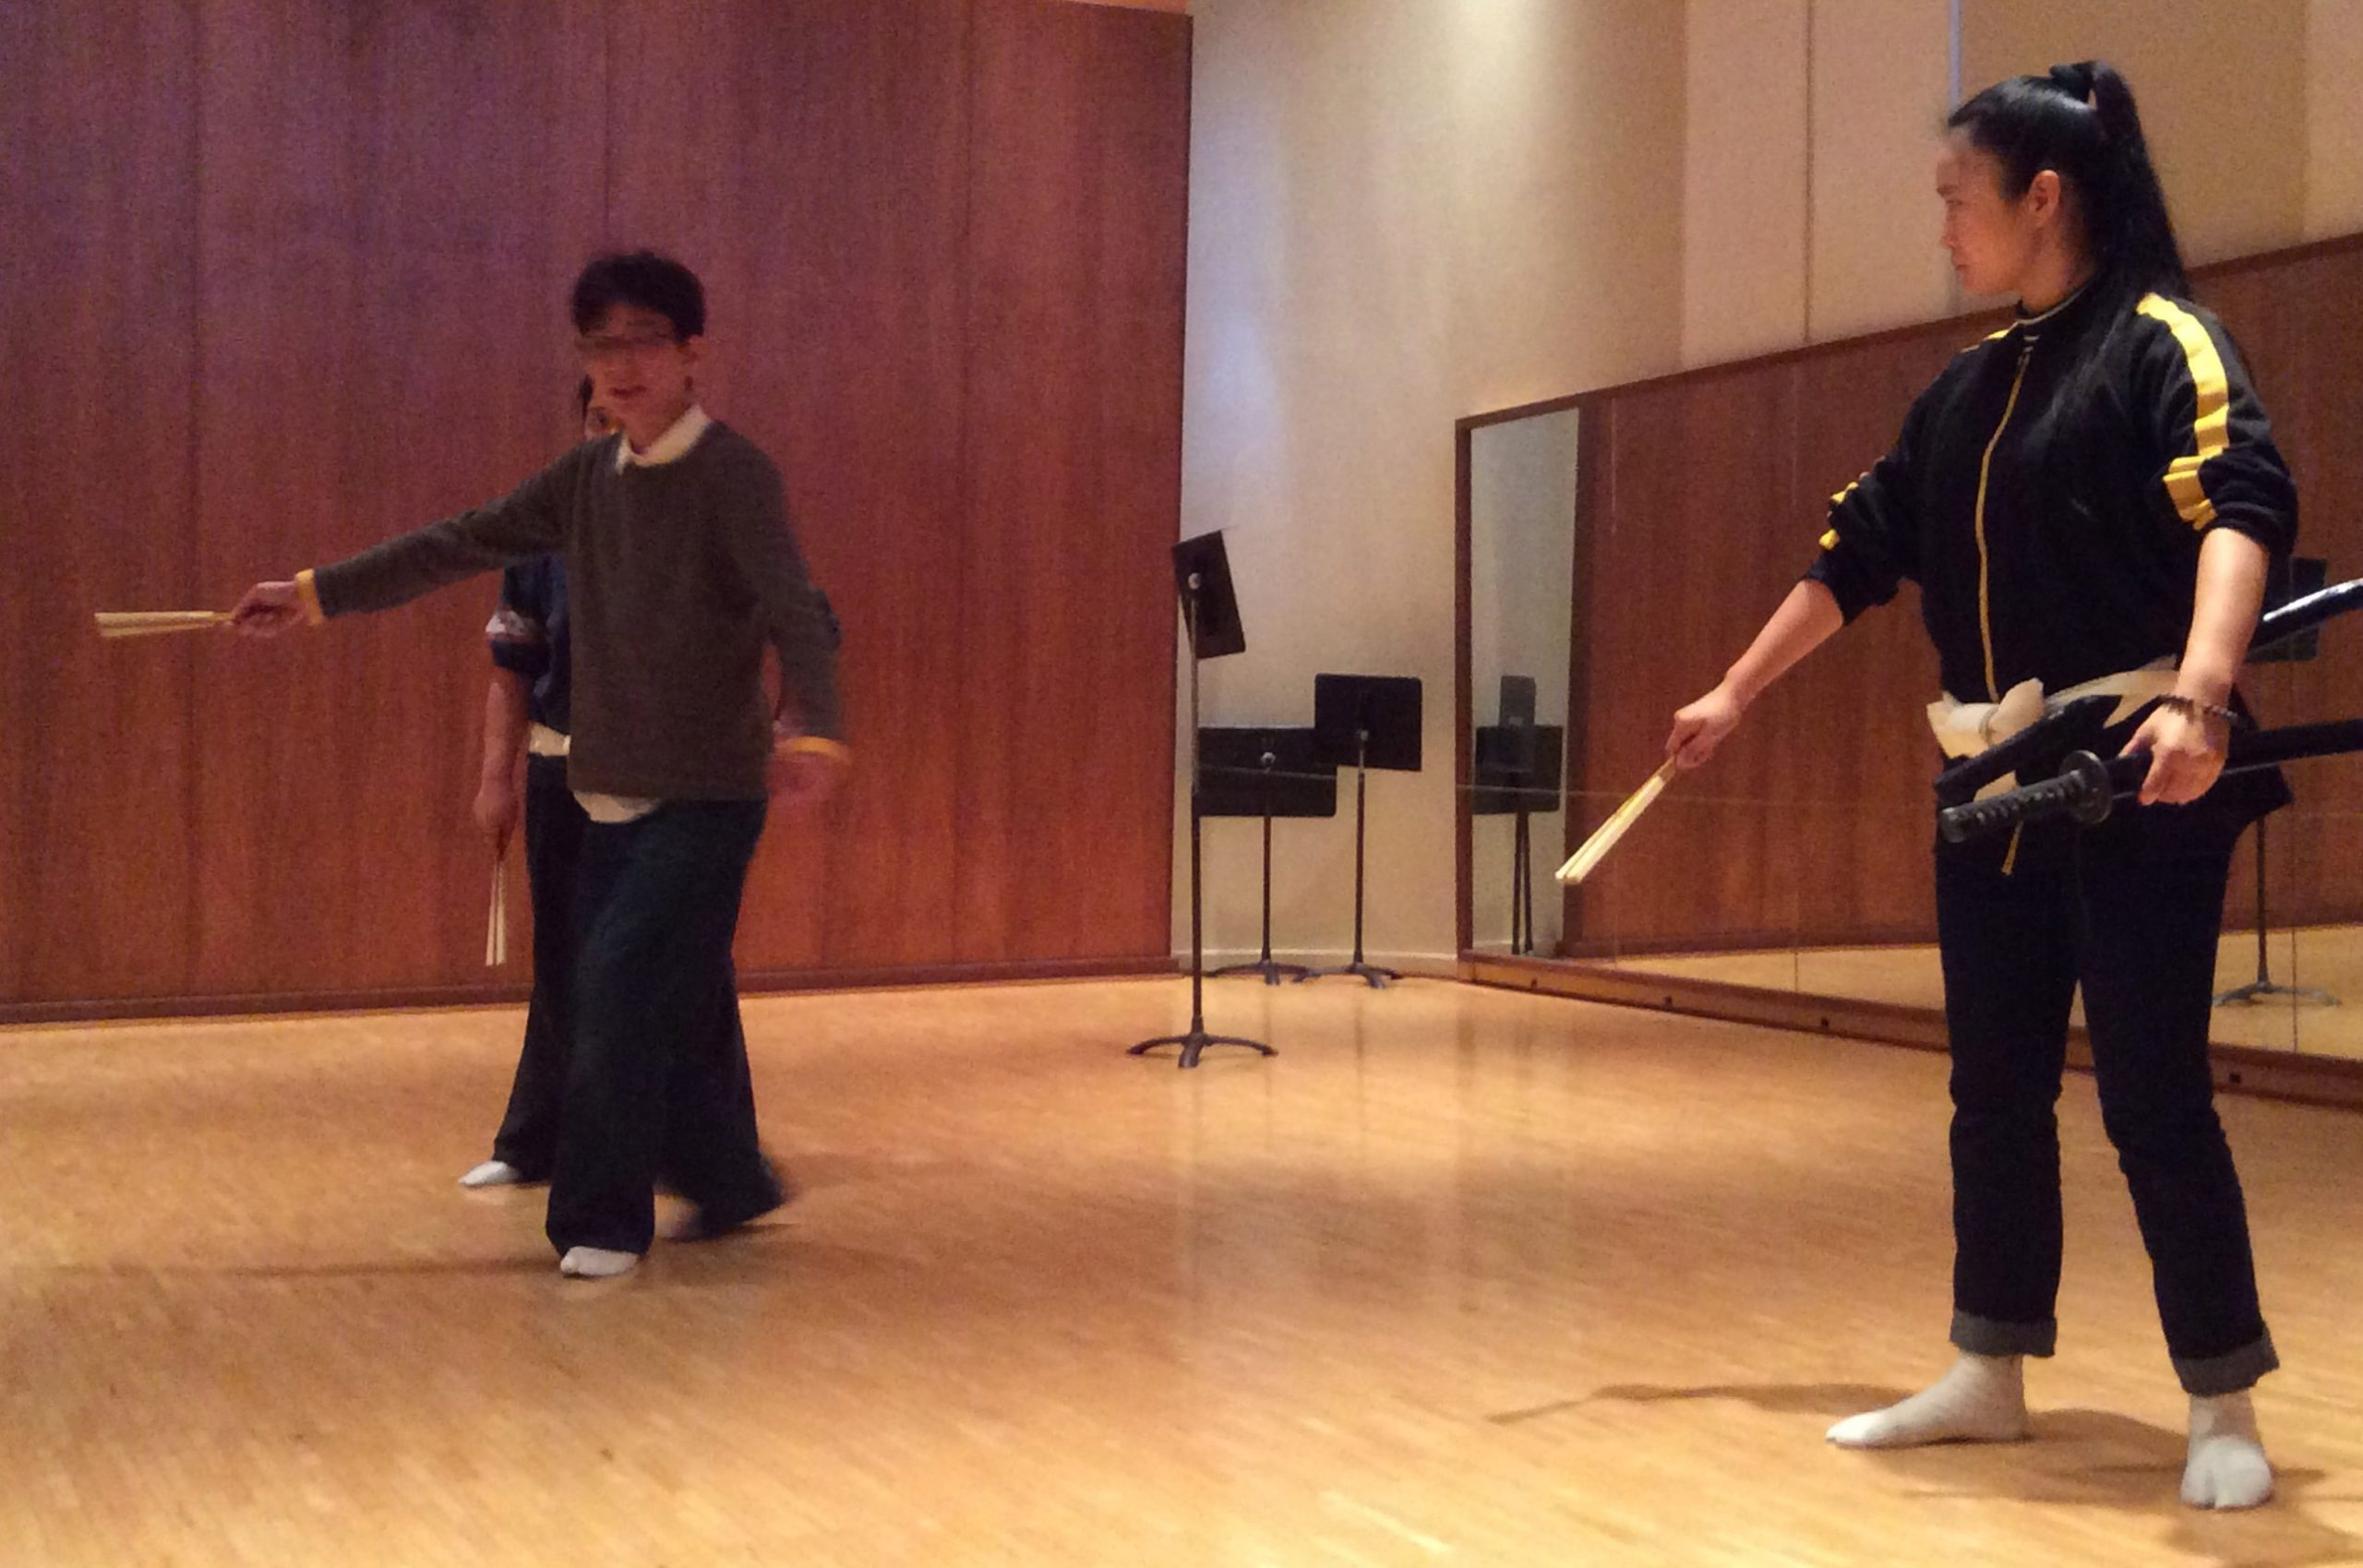 Shigeyama Sennojō III teaches two UHM students, all with a fan in their right hand